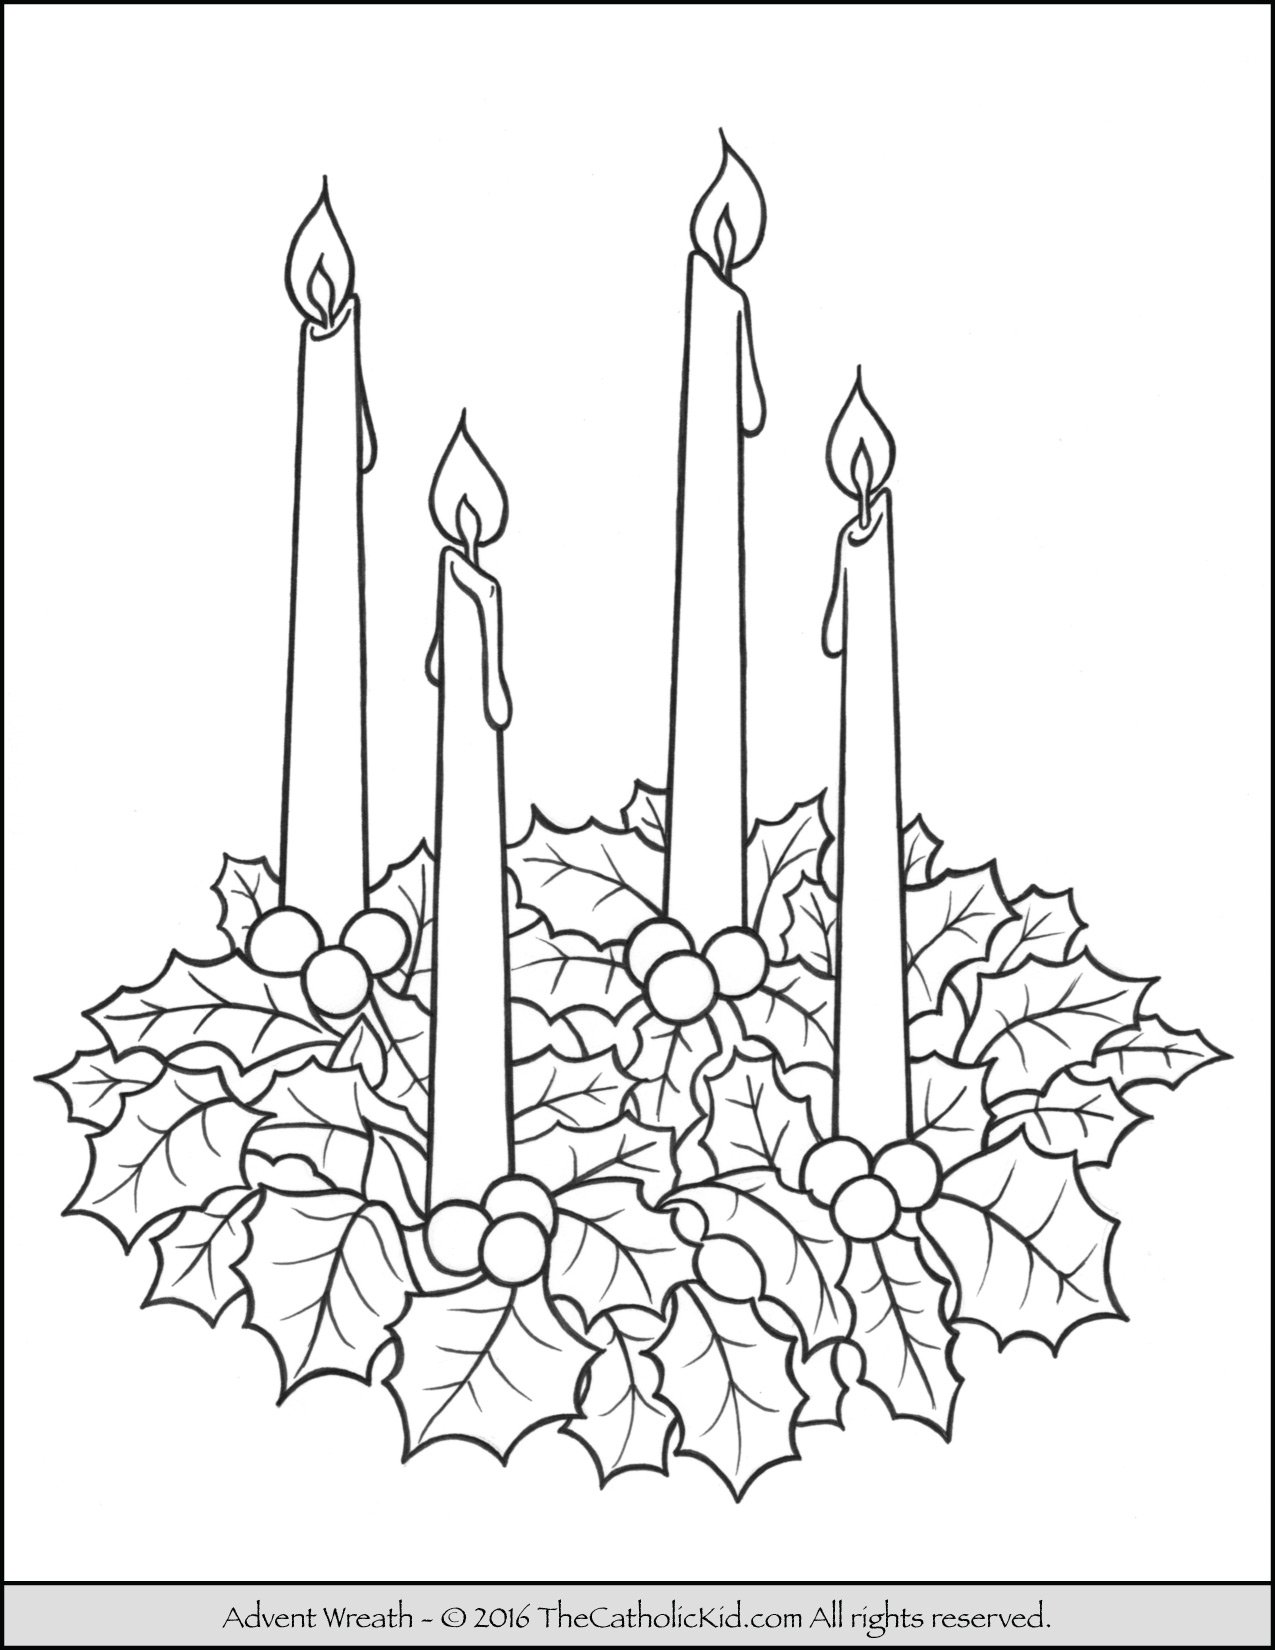 Advent Wreath Coloring Page Advent Colouring Pages